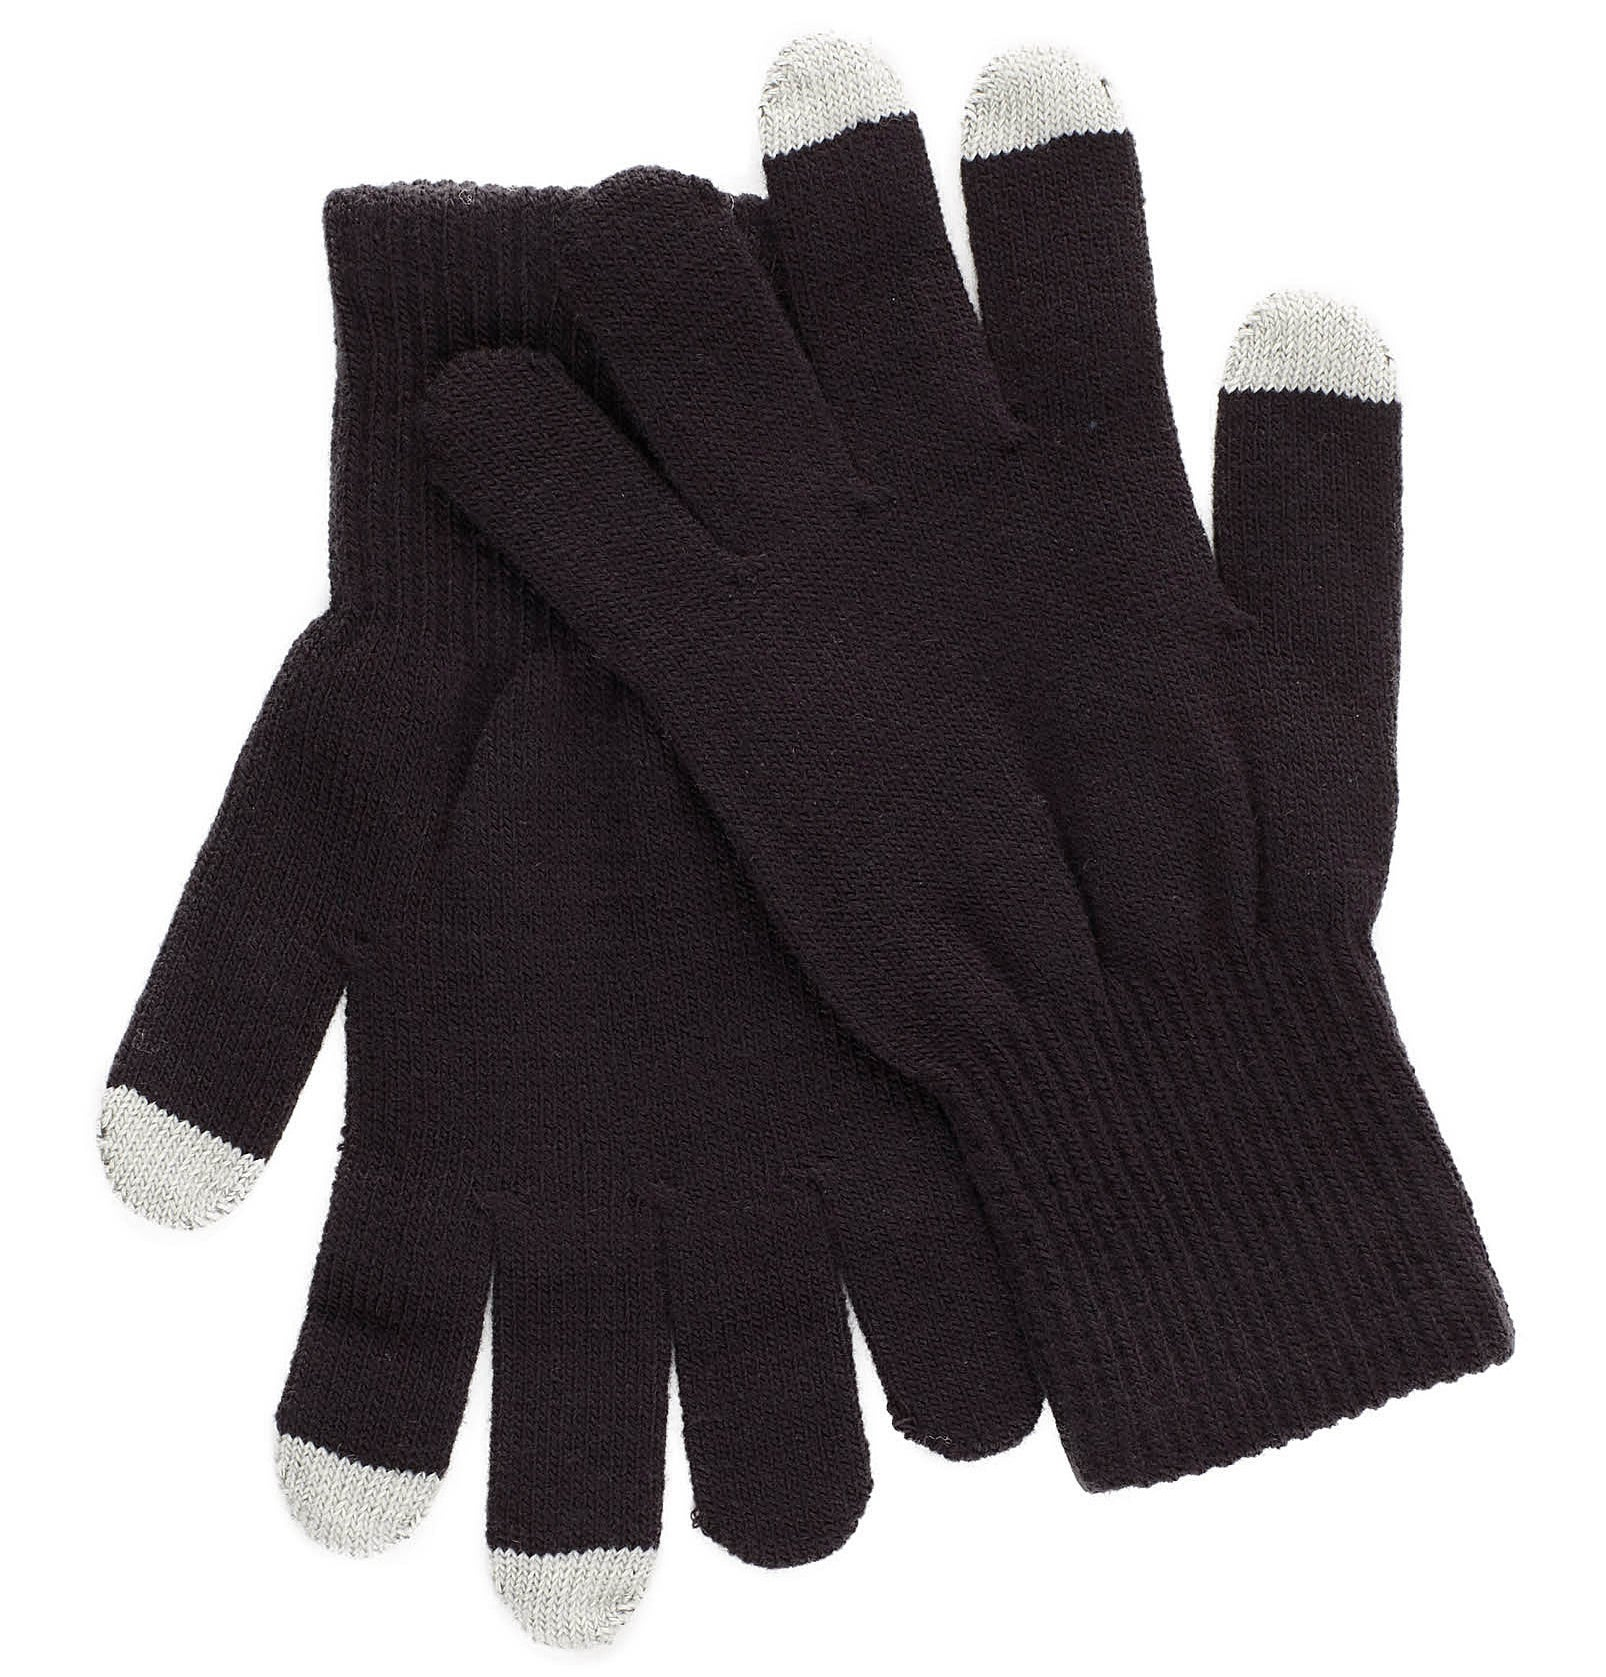 A pair of knit gloves with a different colour the tips of the thumb and two fingers